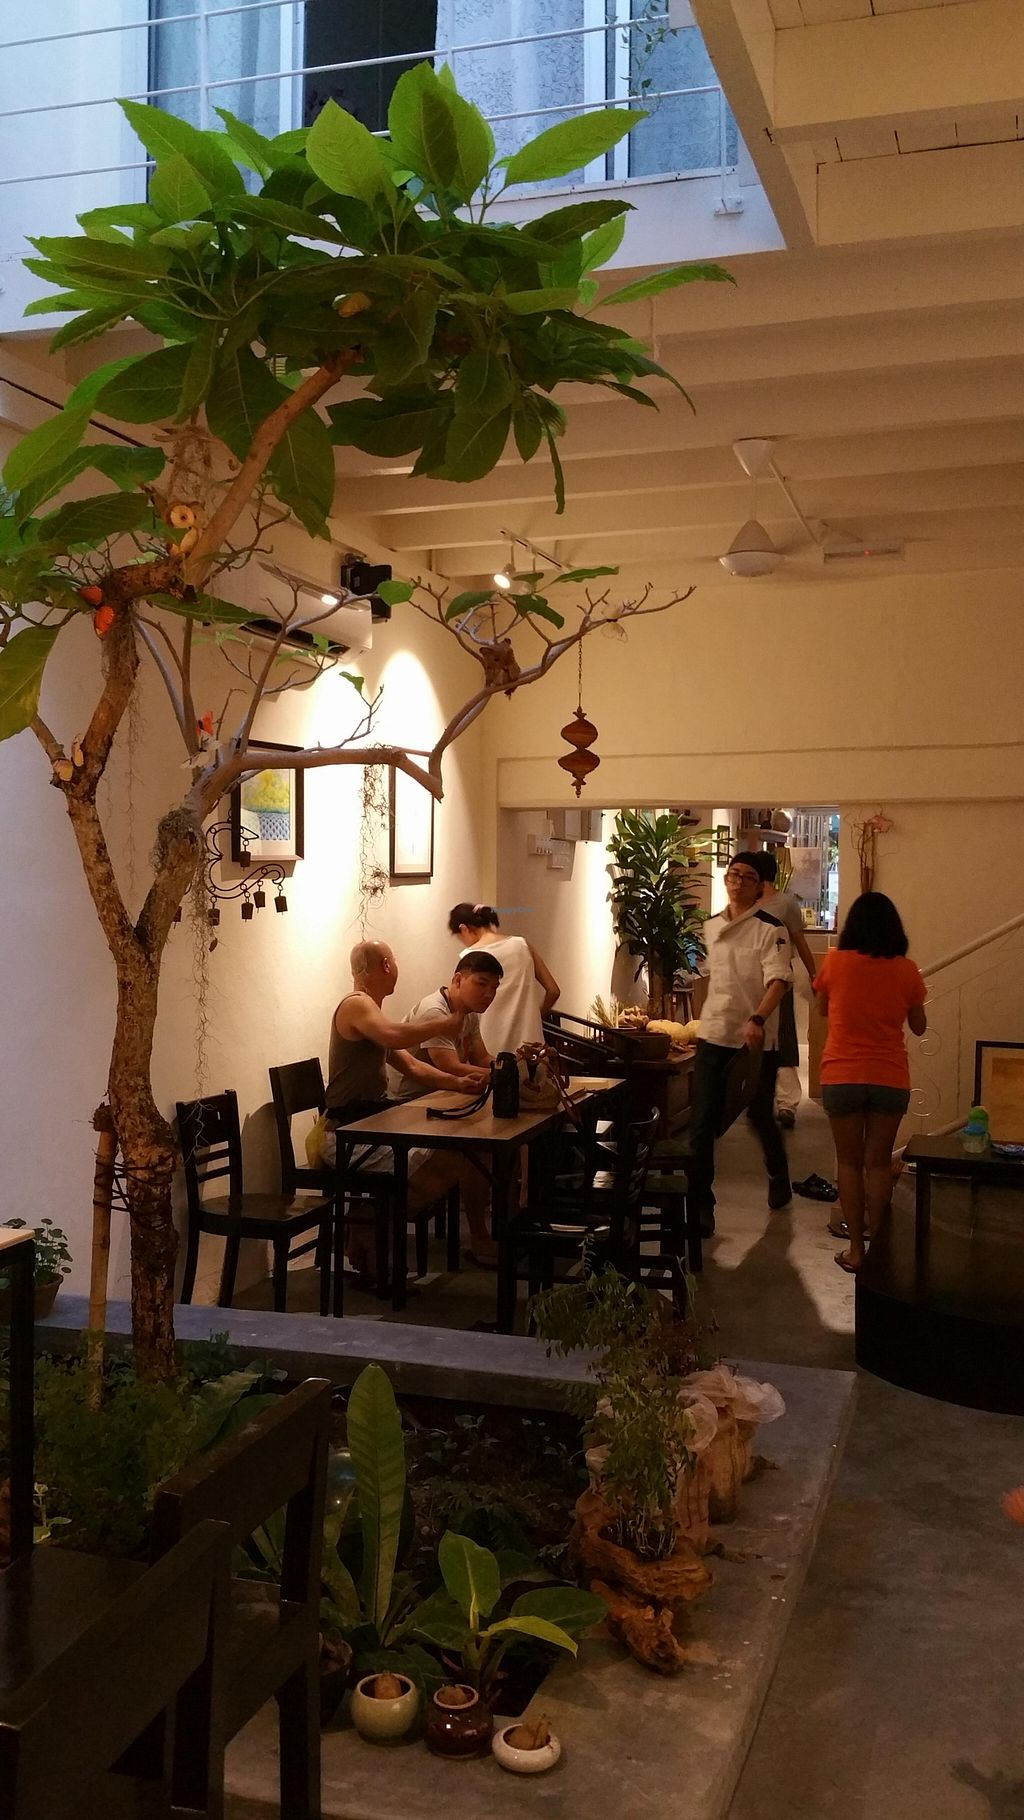 """Photo of Seeds Garden Bistro  by <a href=""""/members/profile/ShanAng"""">ShanAng</a> <br/>Relaxing place for dinner amidst the noisy Jonker night street! <br/> March 21, 2016  - <a href='/contact/abuse/image/68249/140871'>Report</a>"""